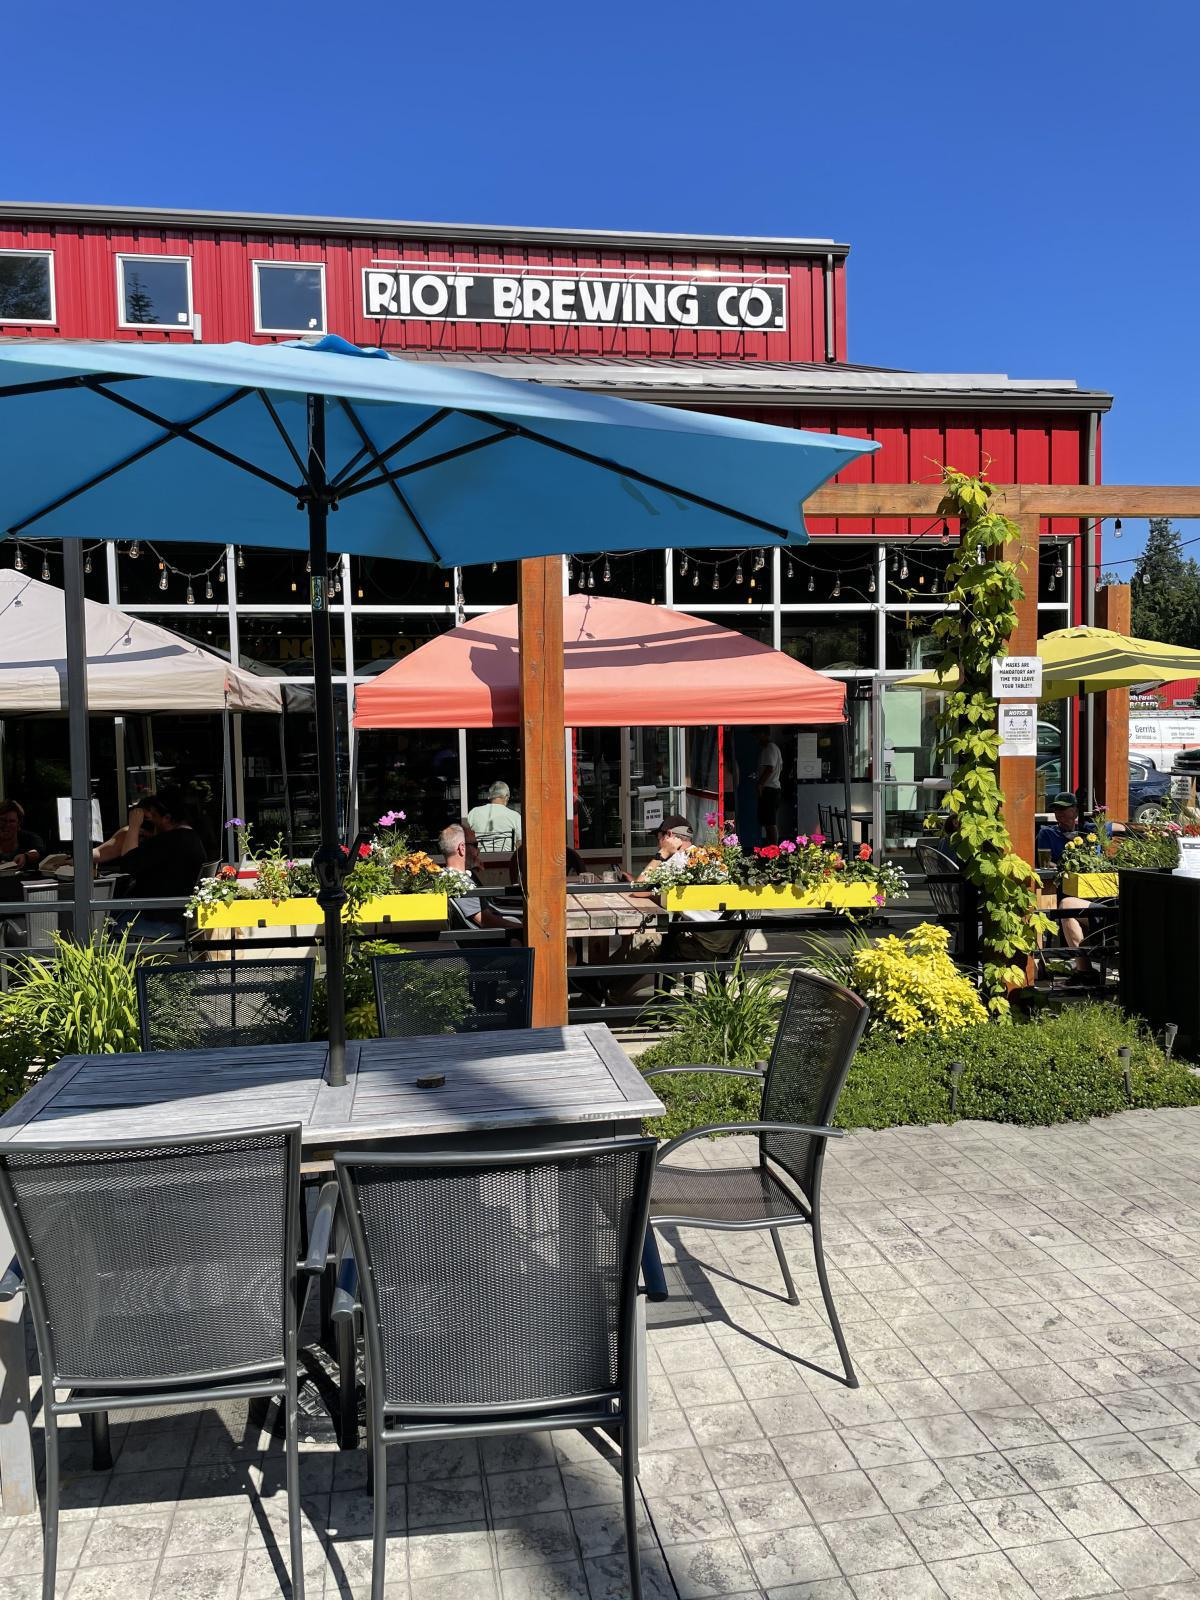 RIOT BREWING: A Brewery with a Big Heart in a Small Town